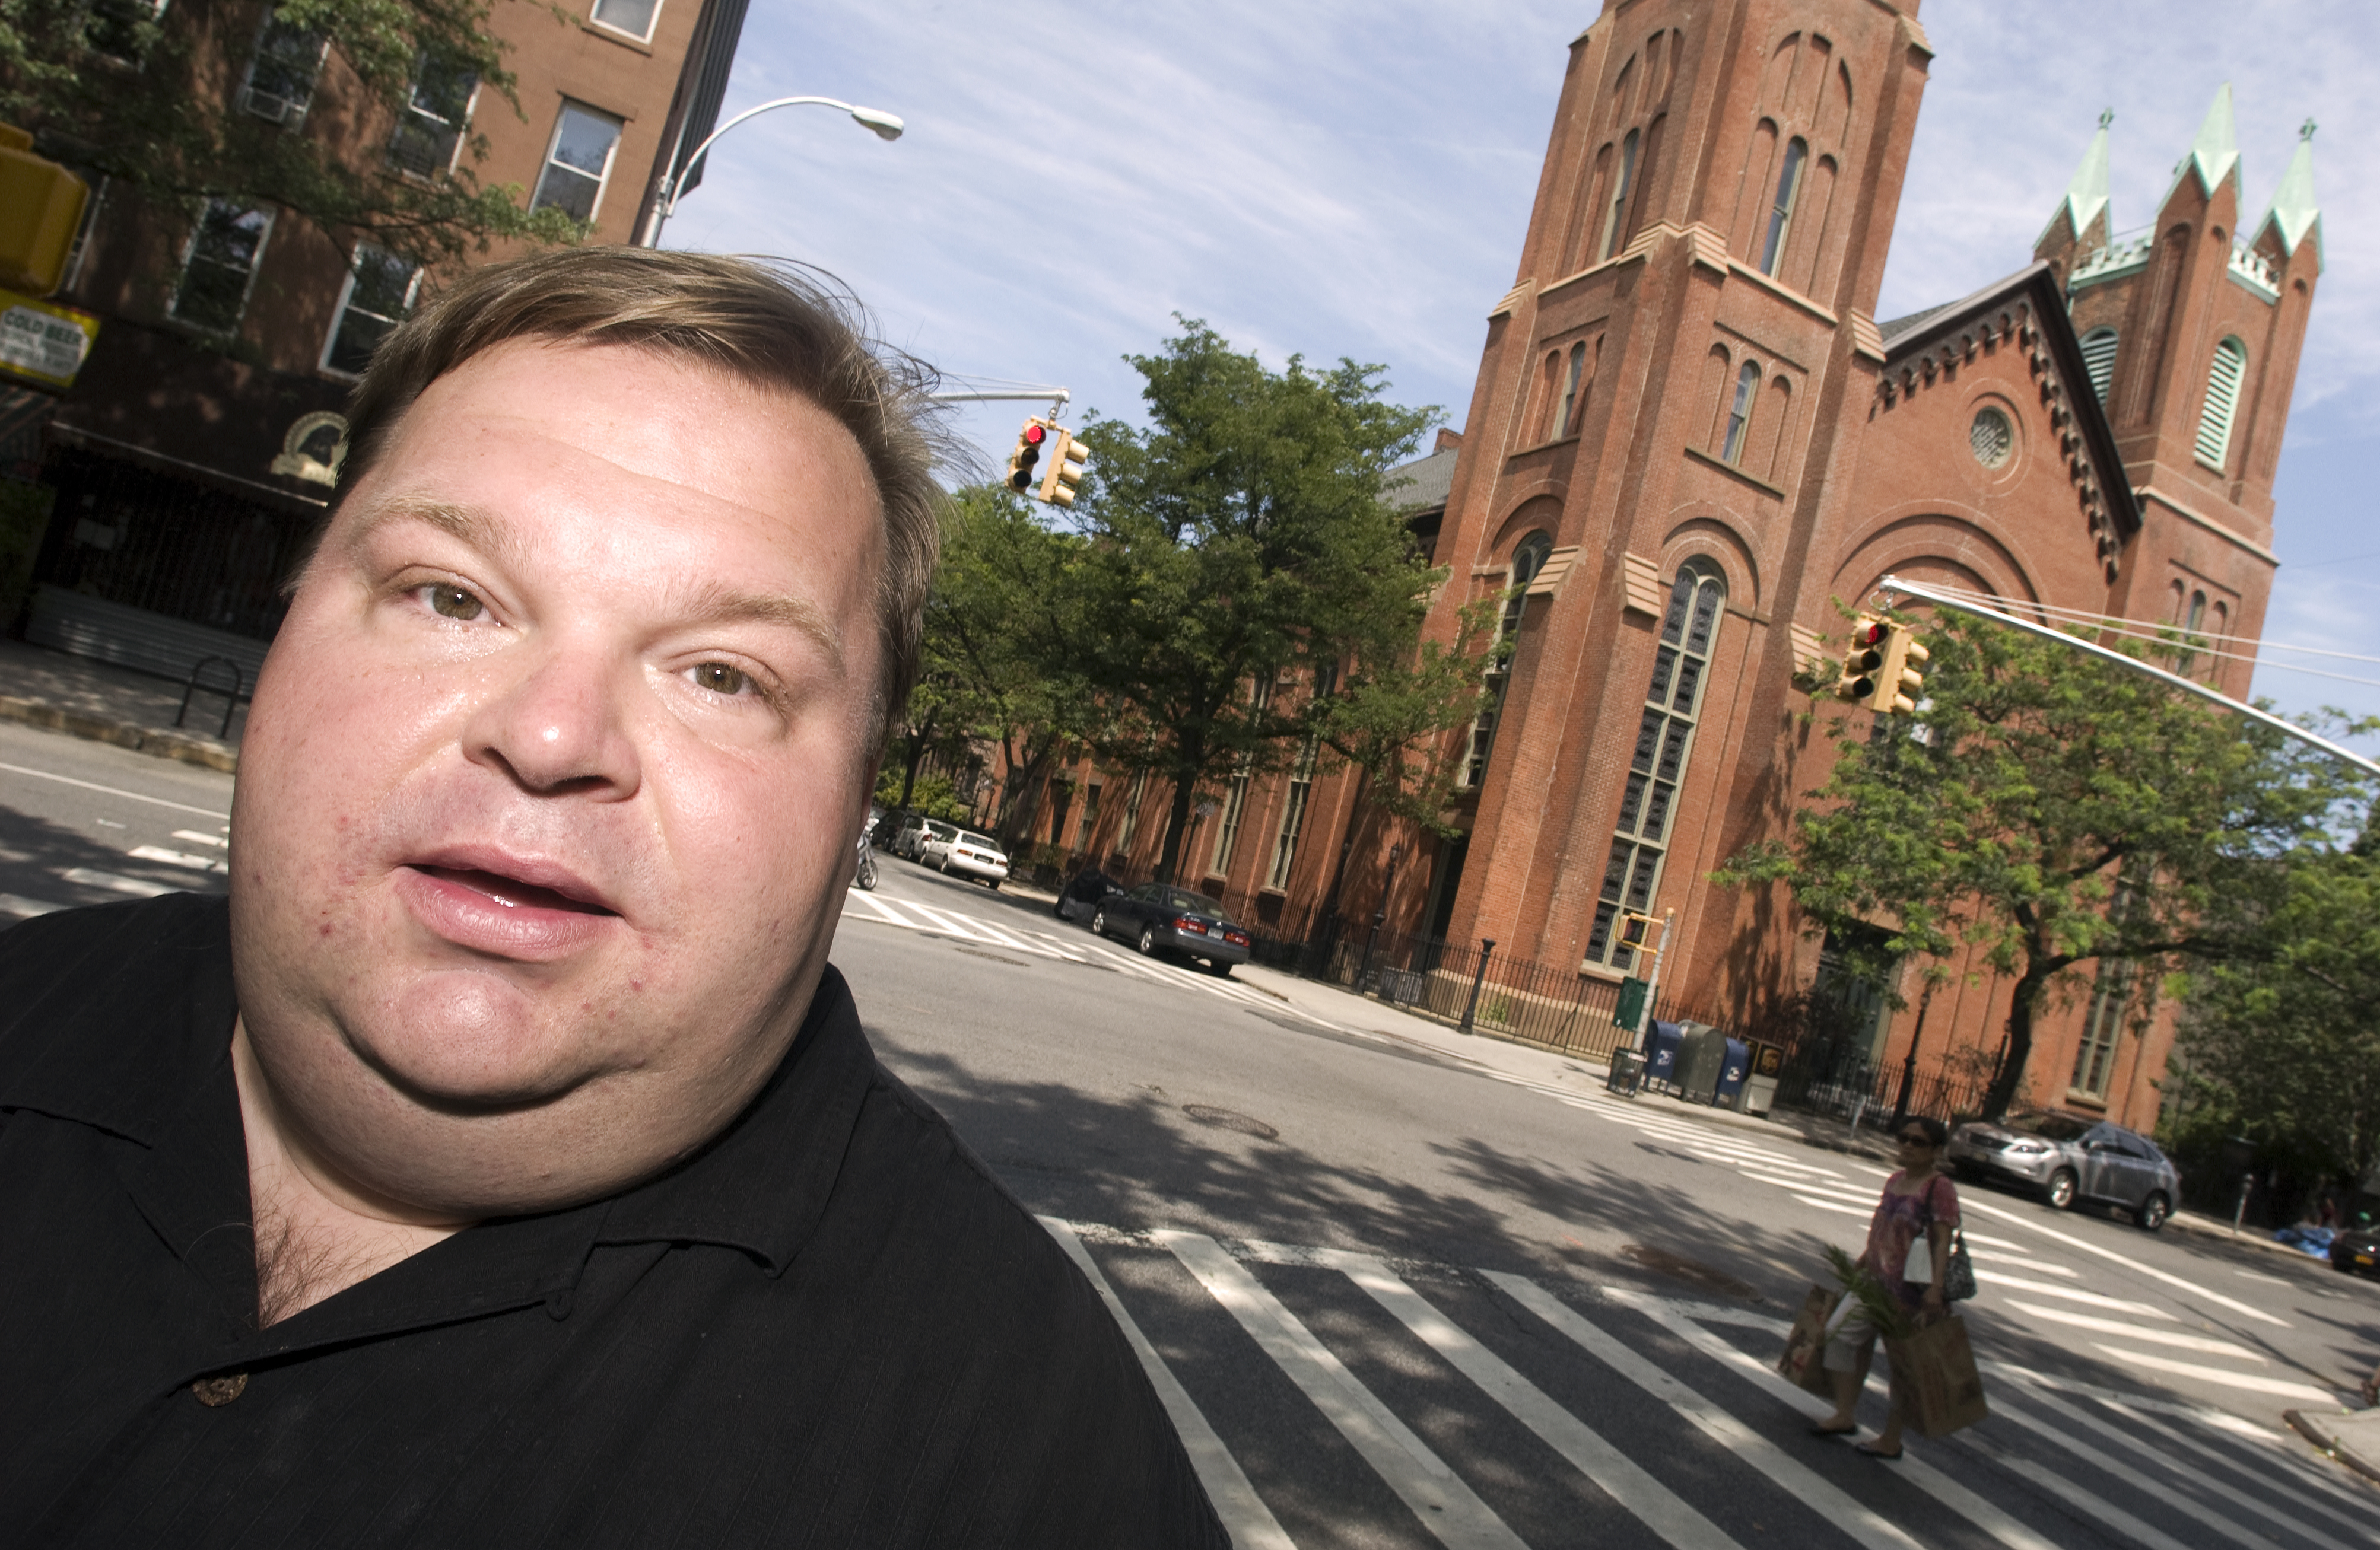 Mike Daisey photographed at Carroll Gardens Park in Brooklyn on July 9, 2012.